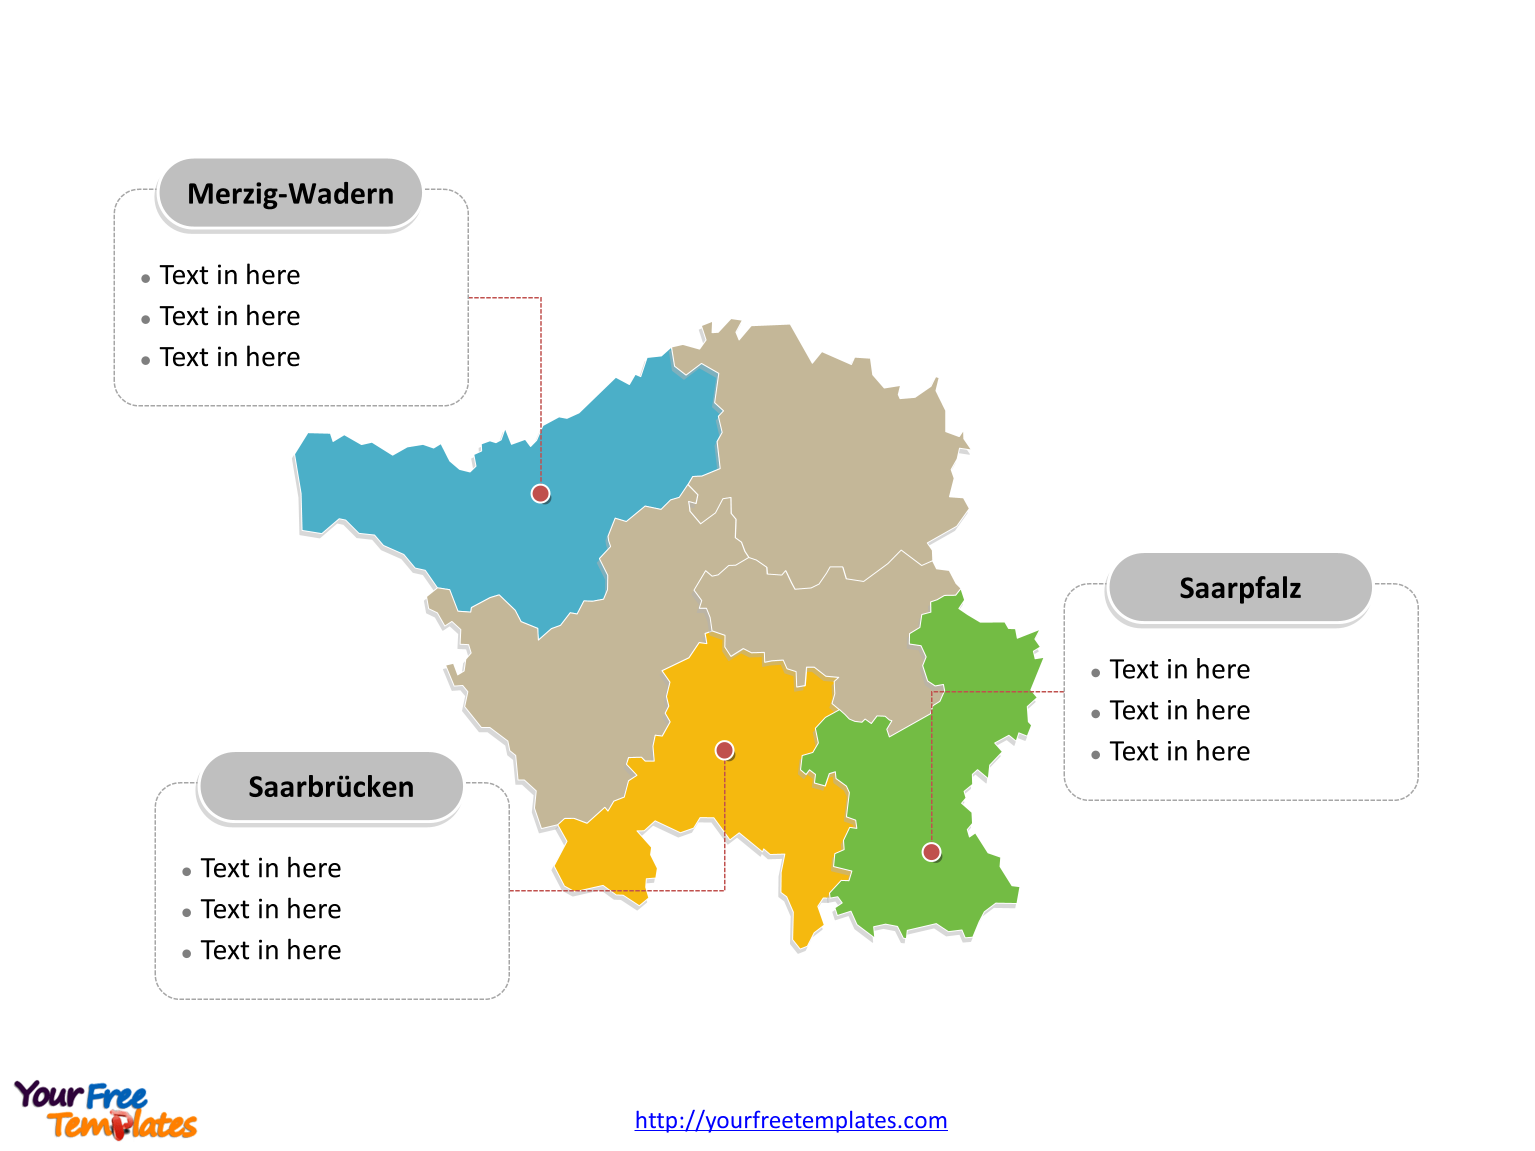 Powerpoint template of Saarland Map labeled with major political districts